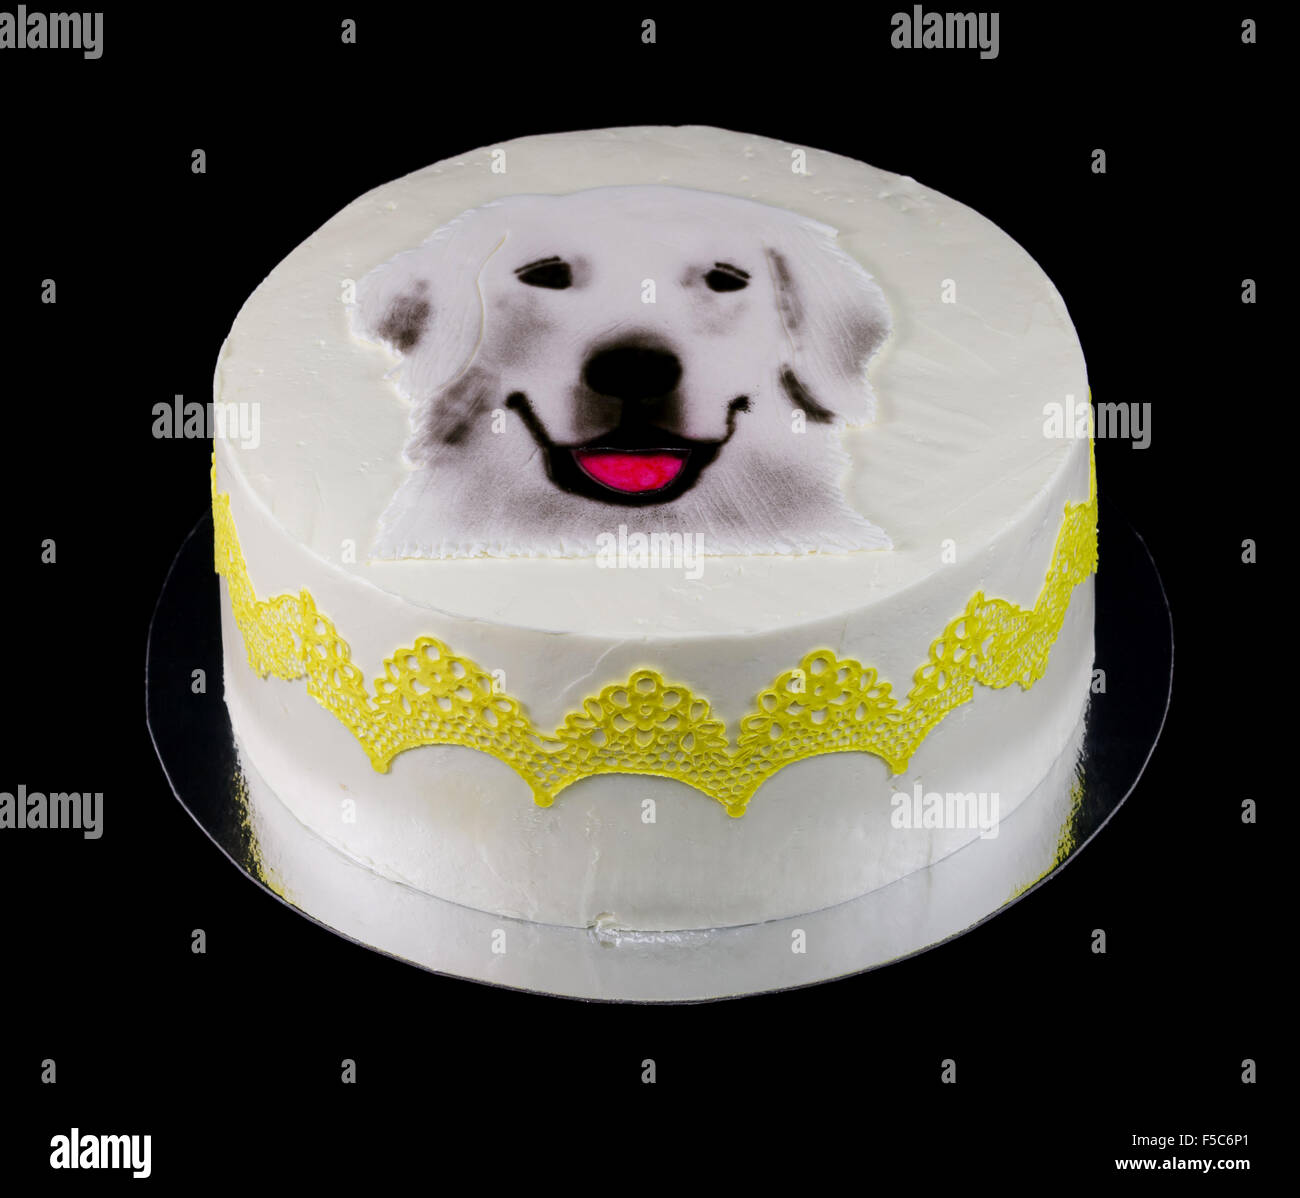 Cake On Face Stock Photos Cake On Face Stock Images Alamy